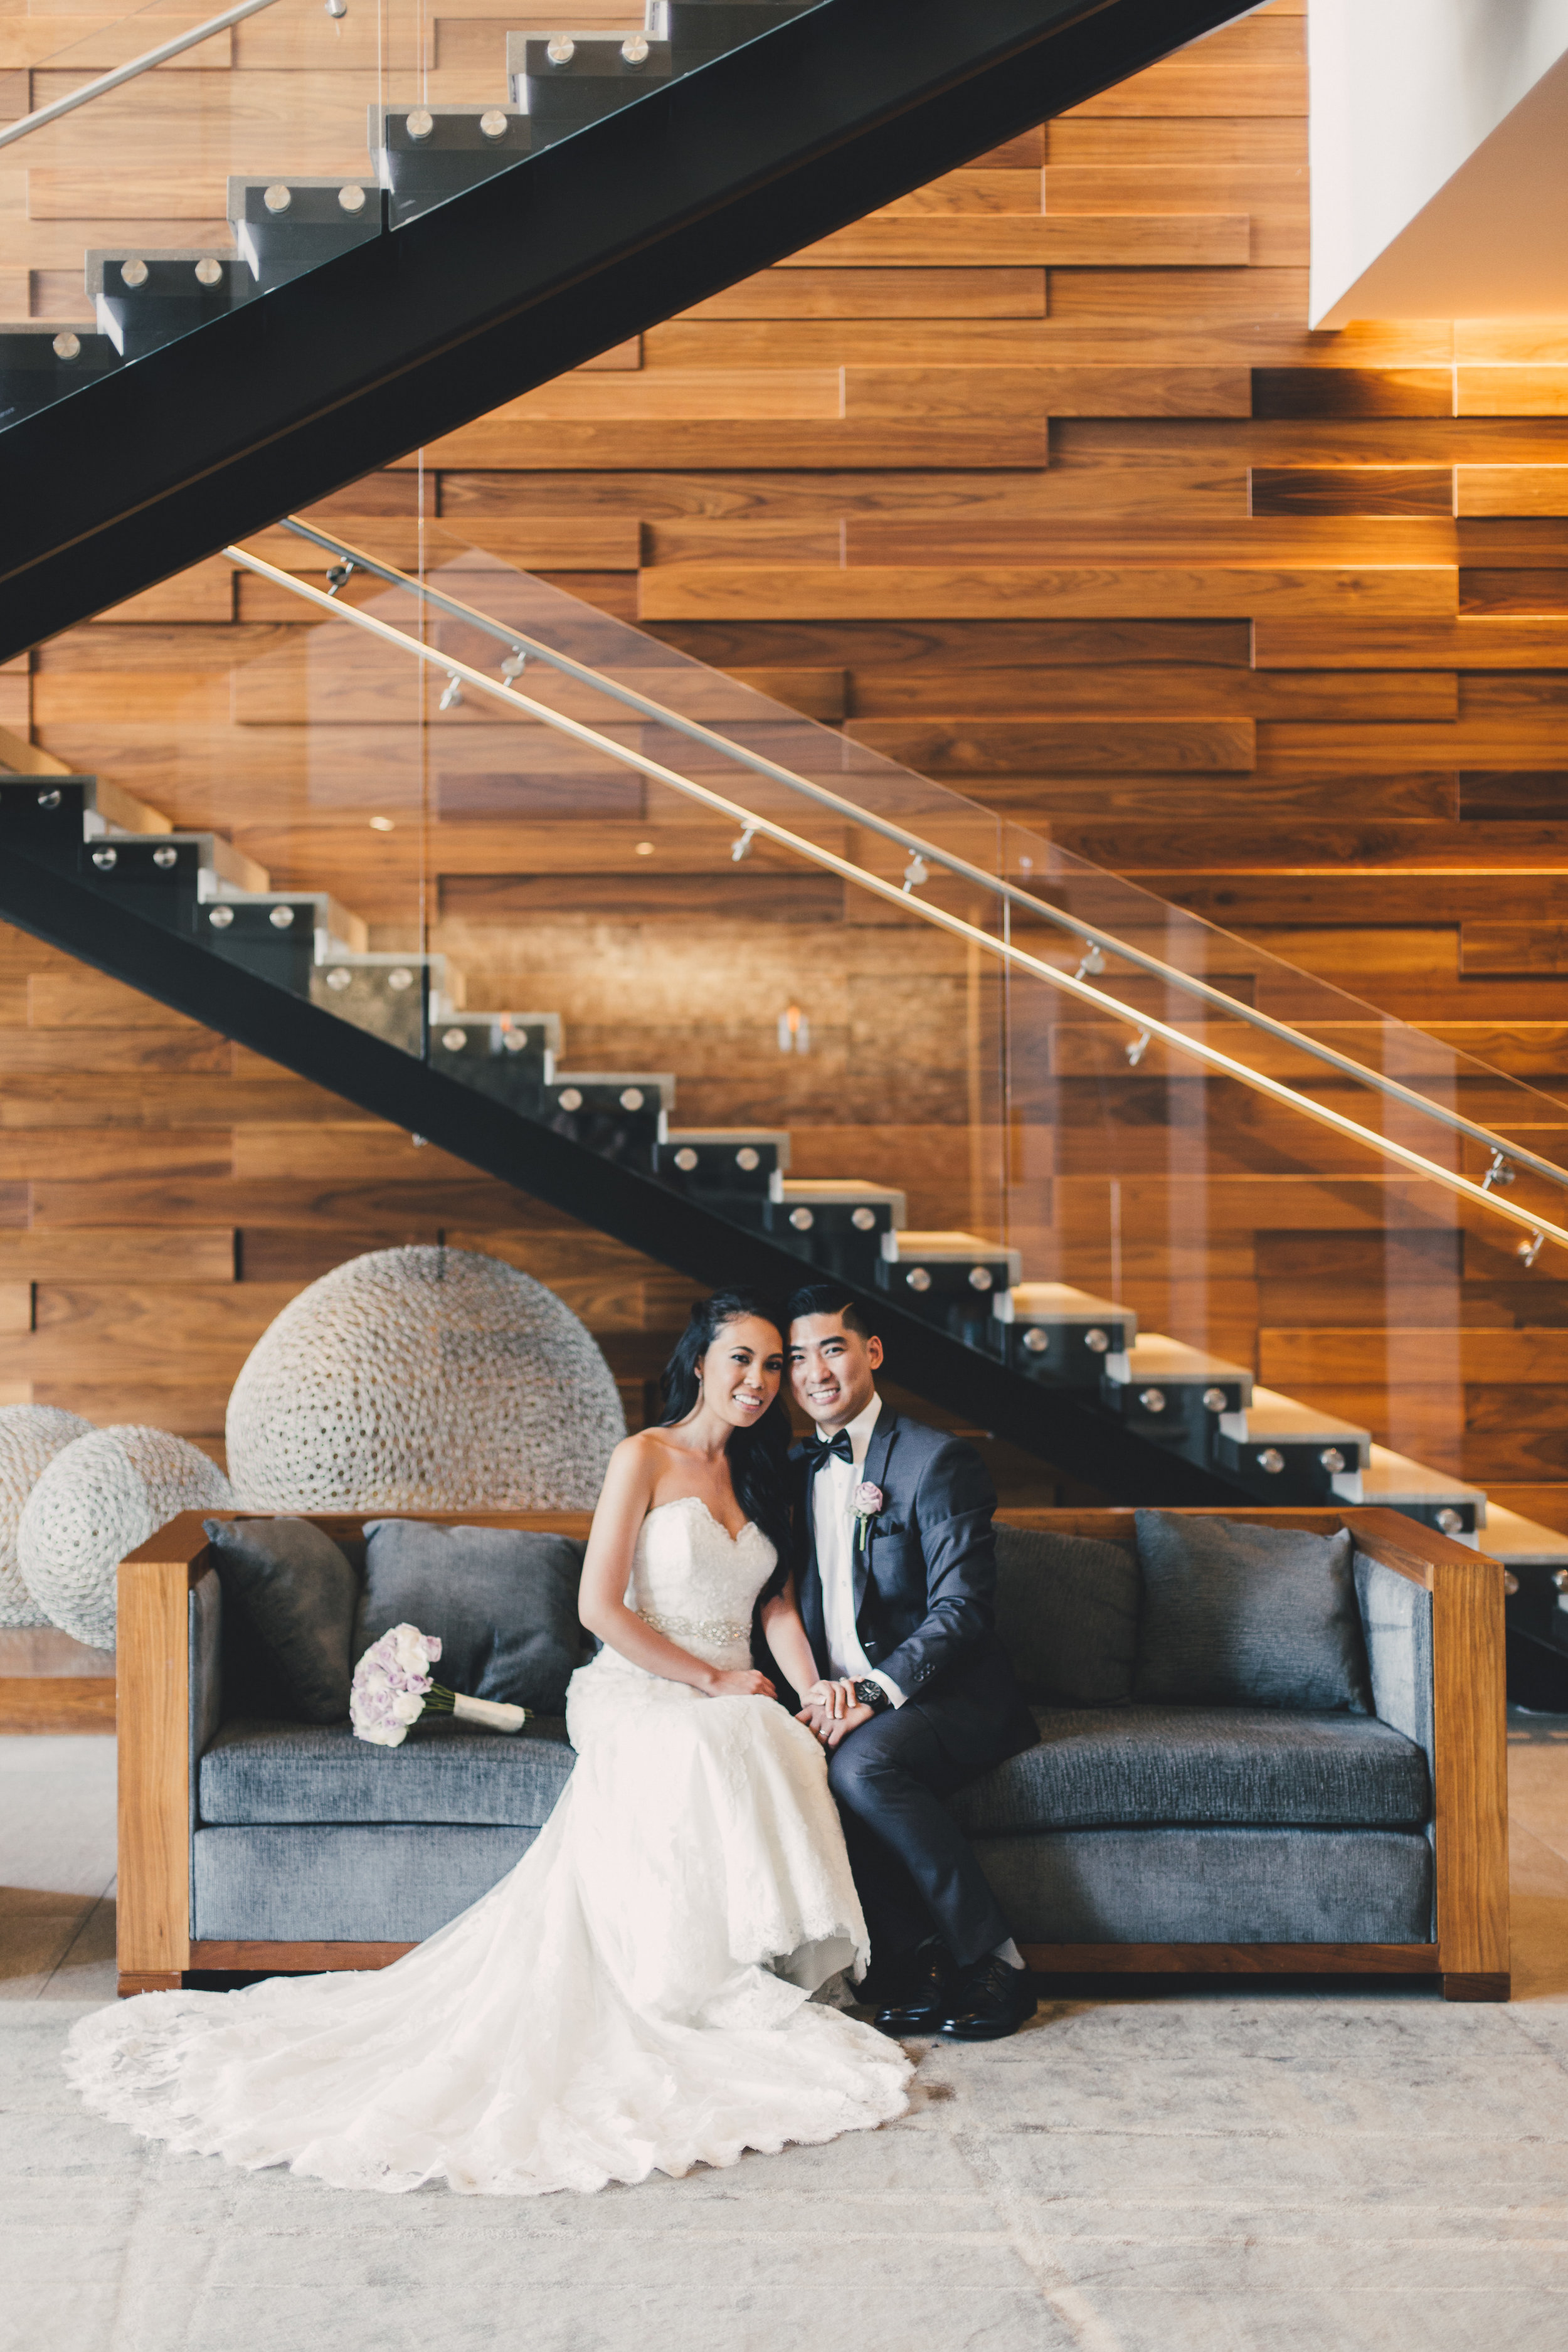 Madel + Andrew - Wedding, Natalie Griffo (111 of 169).jpg